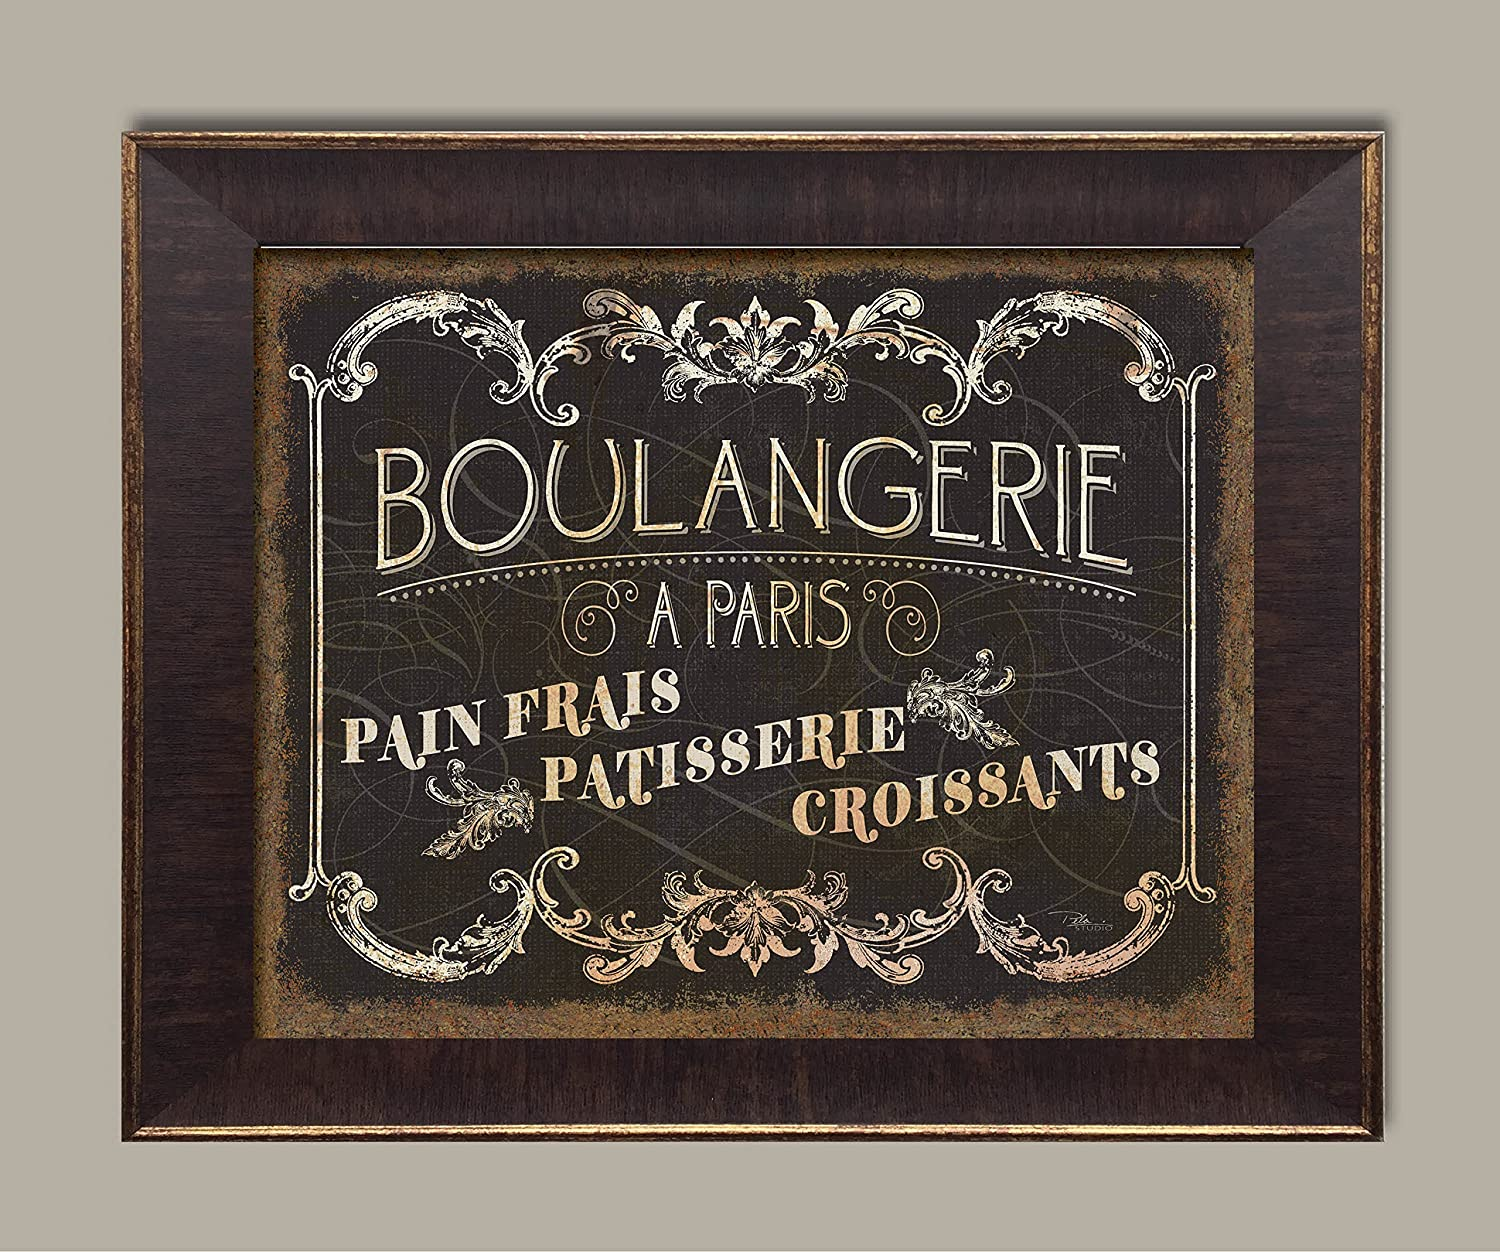 Amazon.com: Gango Home Decor Parisian Sign French Boulangerie Croissants and Patisserie by Pel Studios; One 14x11in Paper Poster: Posters & Prints